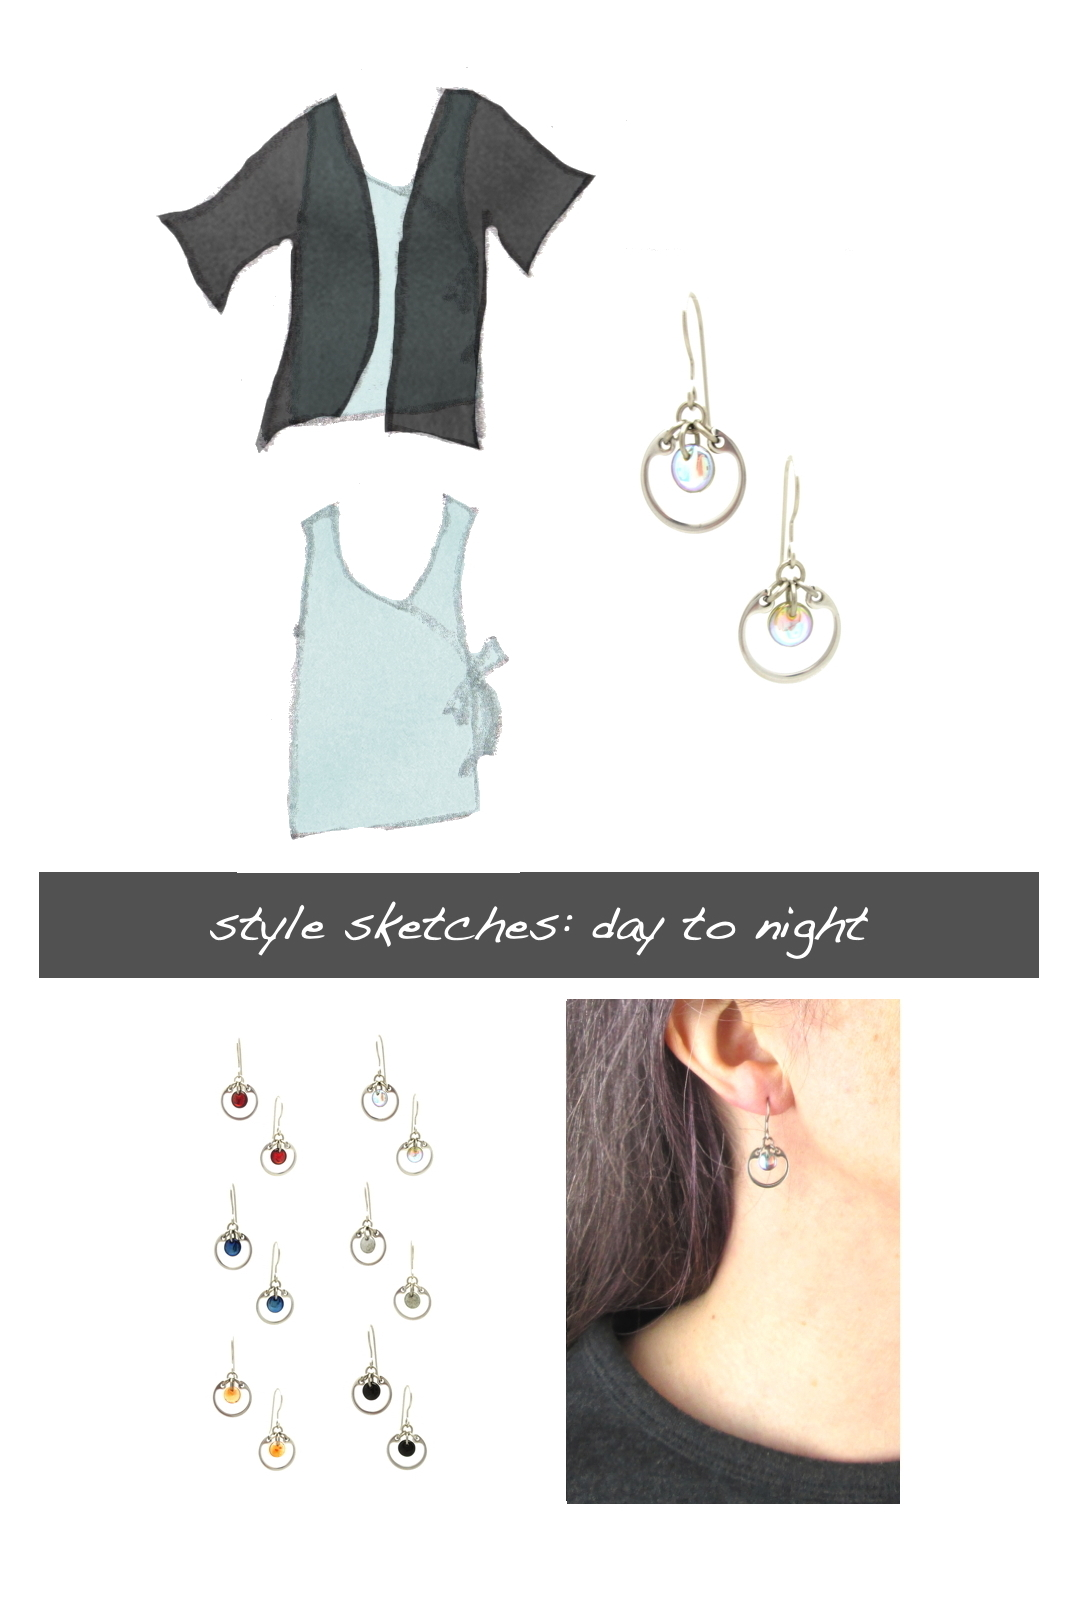 Compiled image with a style sketch of an outfit idea, with an ice blue sleeveless wrap top & black cardigan, with Wraptillion's small modern circle earrings in pale rainbow, a closeup modeled photo of the same earrings, and additional color choices for the small circle earrings. Text on image reads: style sketches: day to night.